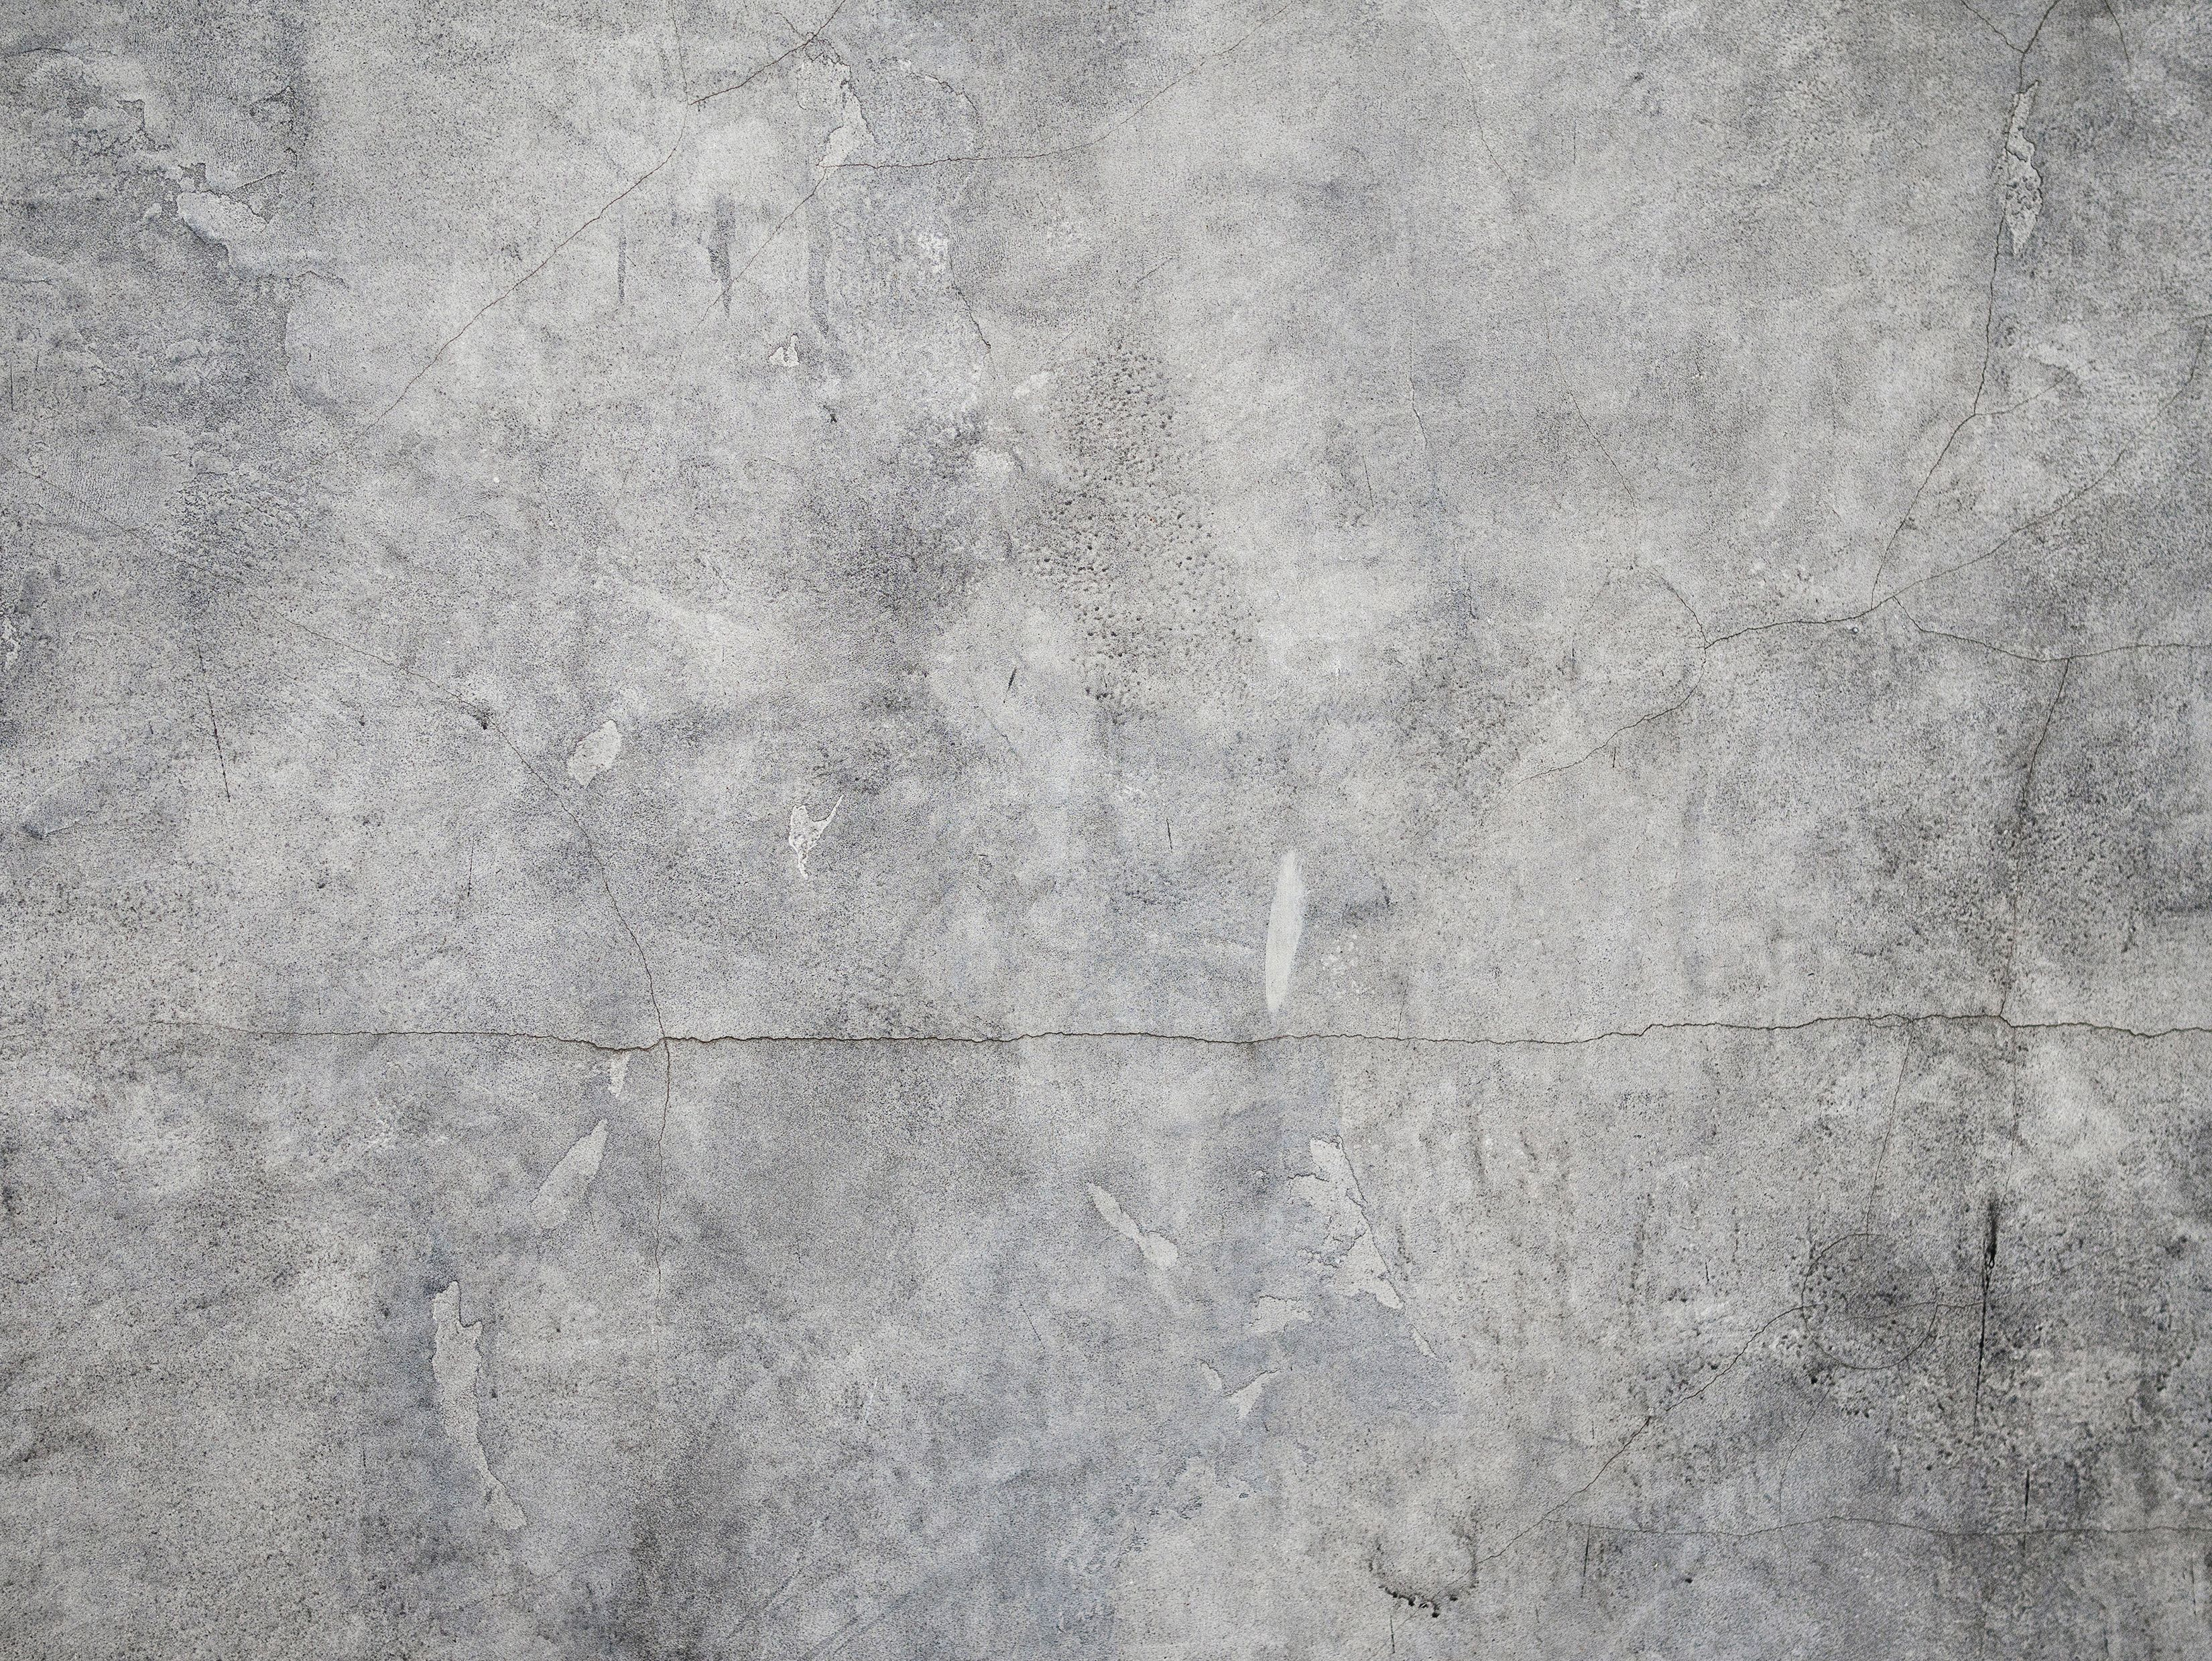 We Re Better Than This Concrete Wall Texture Concrete Wall Concrete